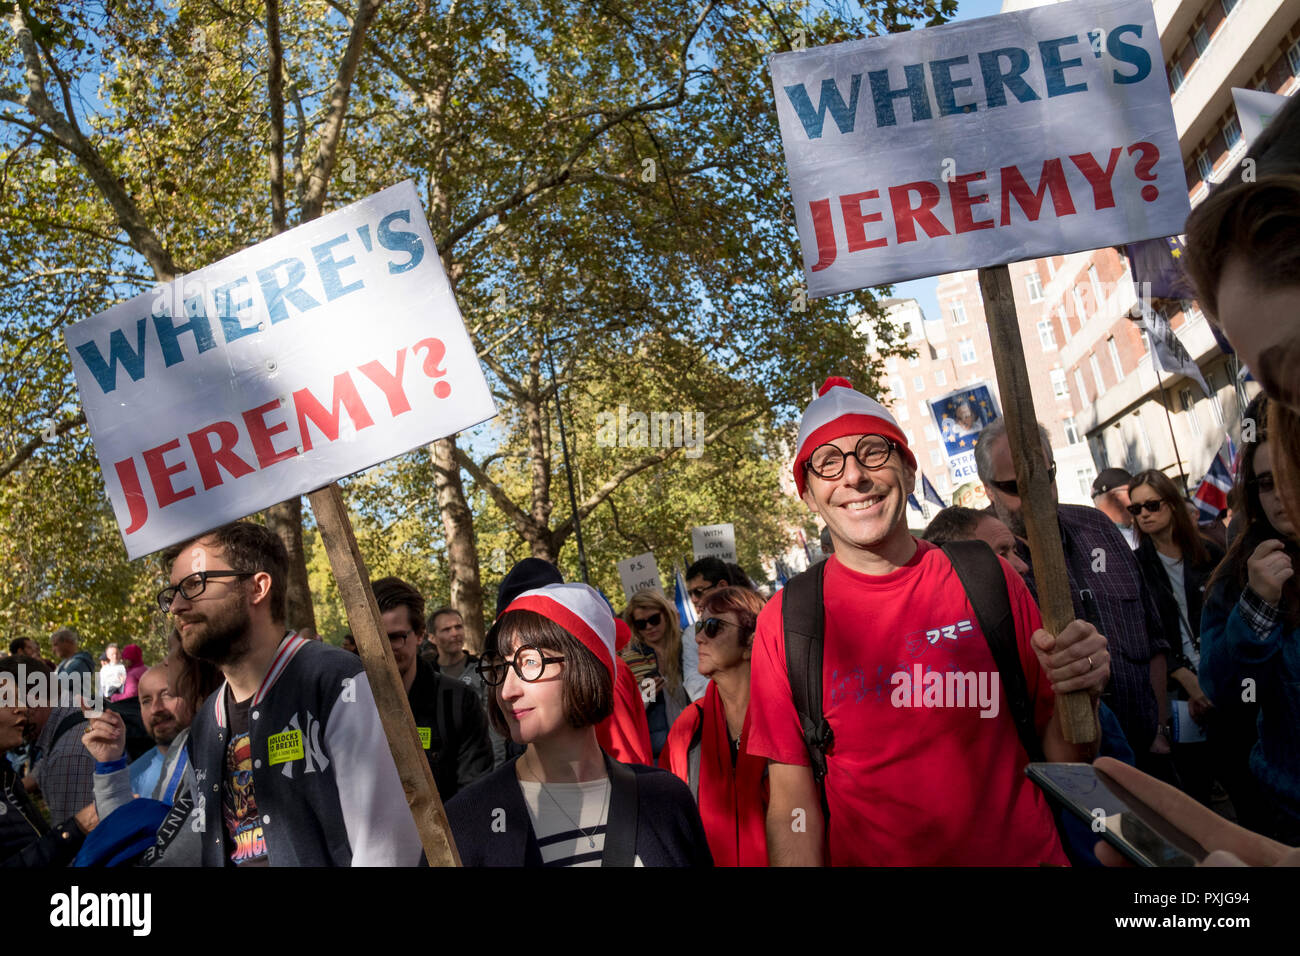 London, UK, 20thOctober 2018.  More than 500,000 people marched on Parliament to demand their democratic voice to be heard in a landmark demonstration billed as the most important protest of a generation. As the date of the UK's Brexit from the European Union, the protesters gathered in their tens of thousands to make political leaders take notice and to give the British public a vote on the final Brexit deal. (photo by Mike Abrahams/Alamy Live News - Stock Image